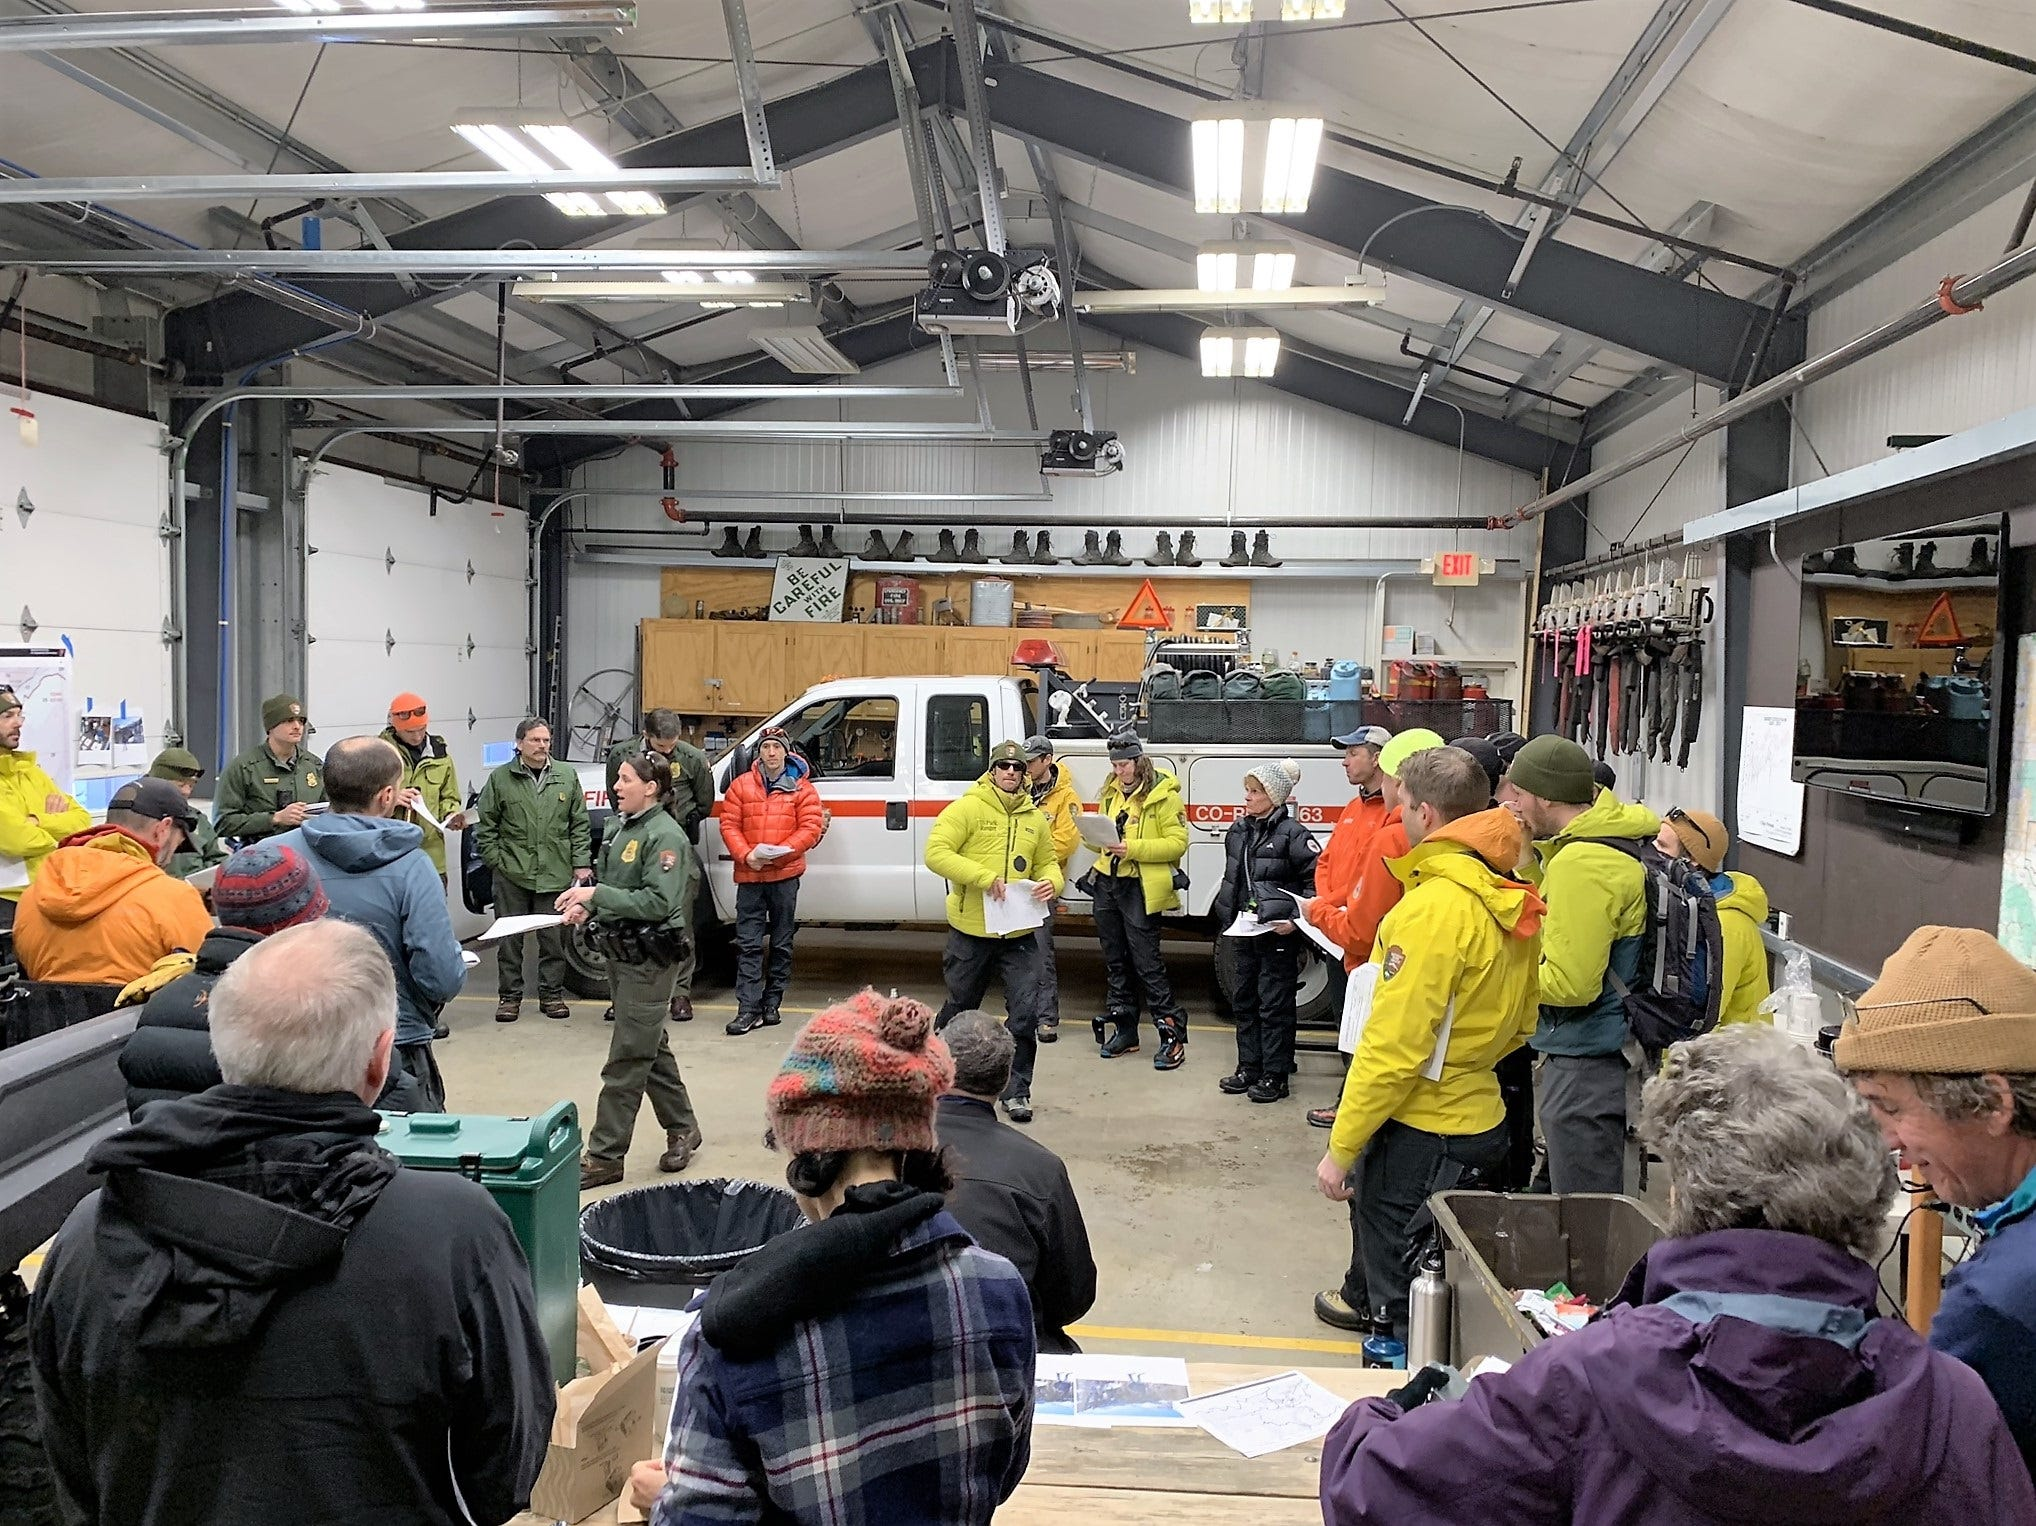 A search crew conducts a briefing before searching for James Pruitt, 70, of Etowah, Tennessee, who is missing in Rocky Mountain National Park.